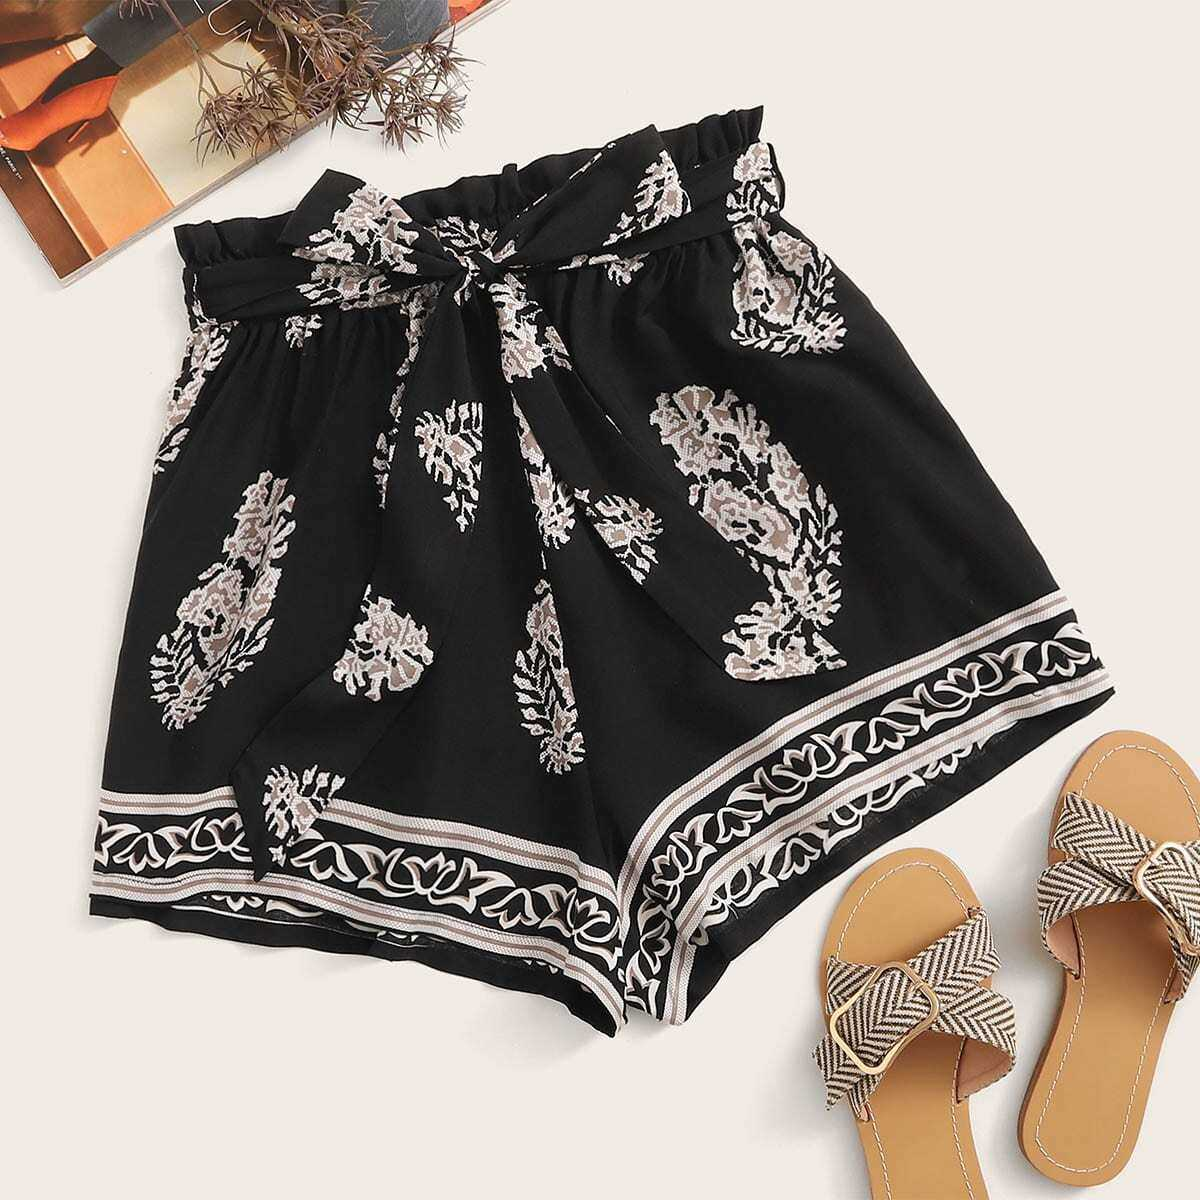 Paperbag Waist Tribal Print Shorts in Black by ROMWE on GOOFASH